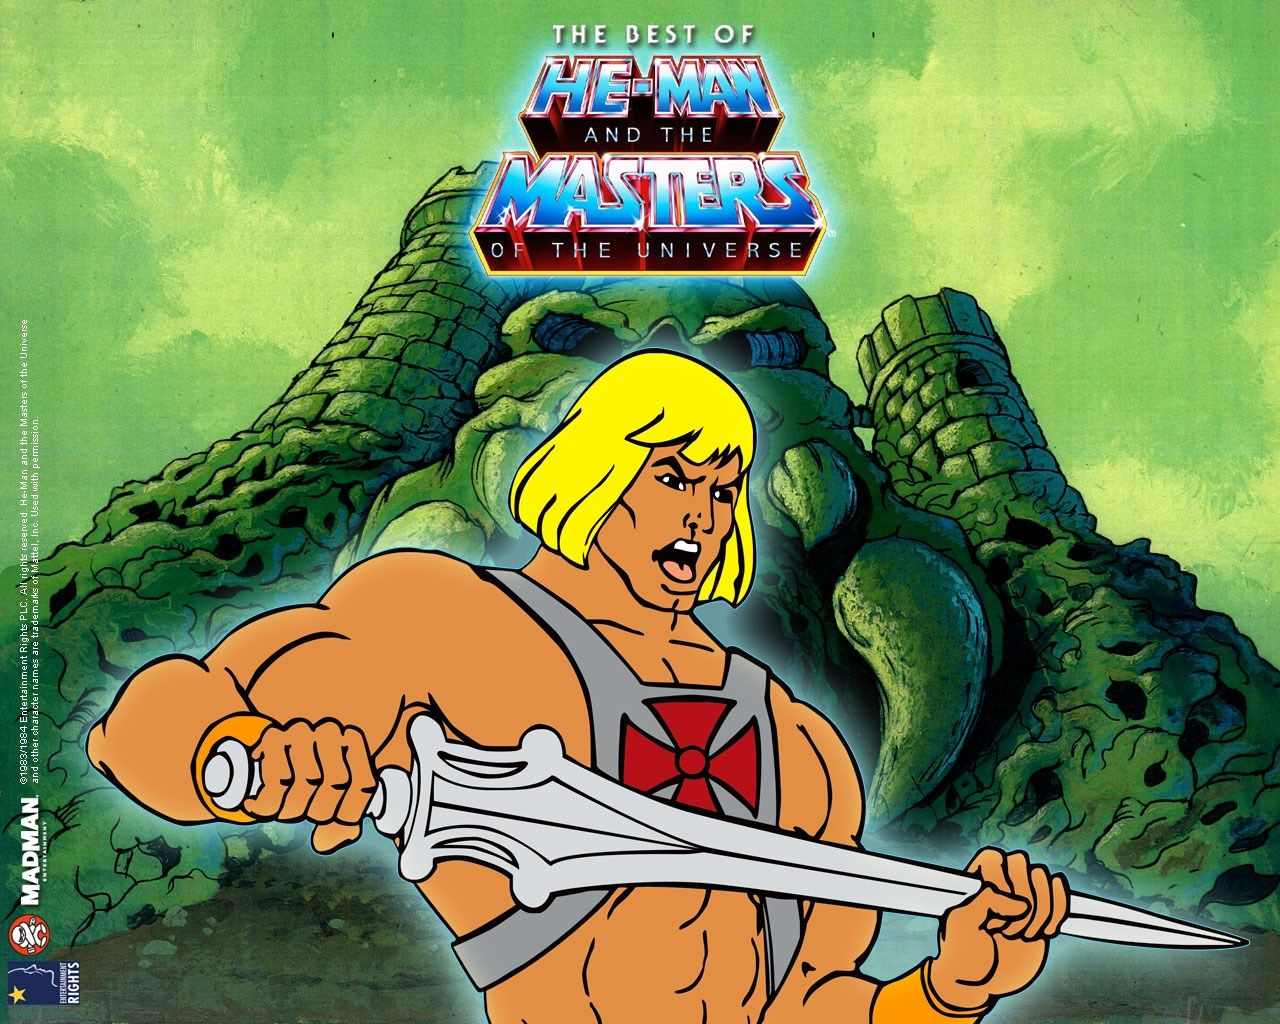 1280x1024 High Resolution Wallpapers Widescreen He Man And The Masters Of The Universe Masters Of The Universe Princess Of Power Universe